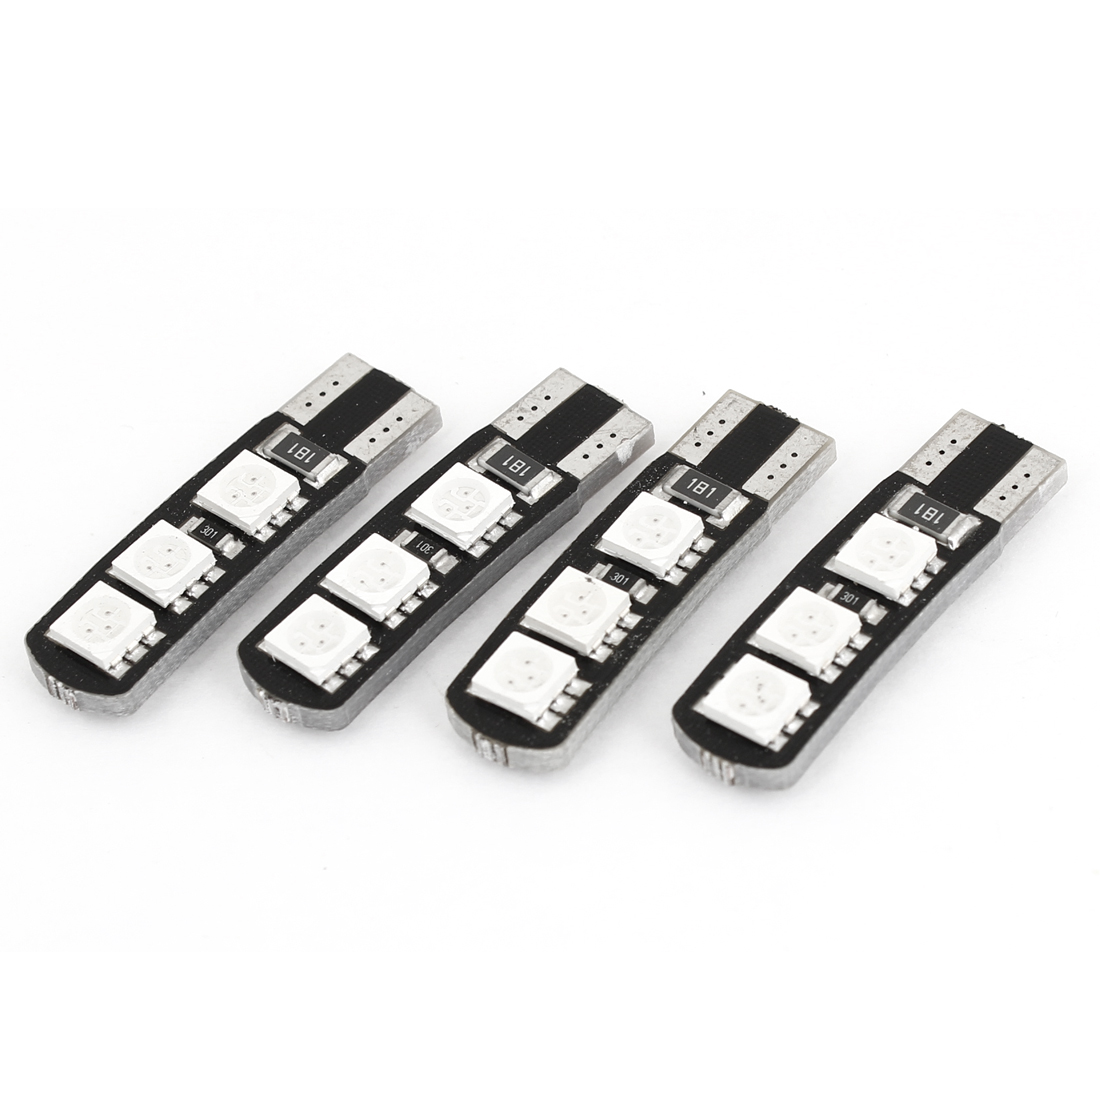 Unique Bargains 4 x 6 Red 5050 SMD LED T10 W5W Car Canbus Error Free Light Lamp